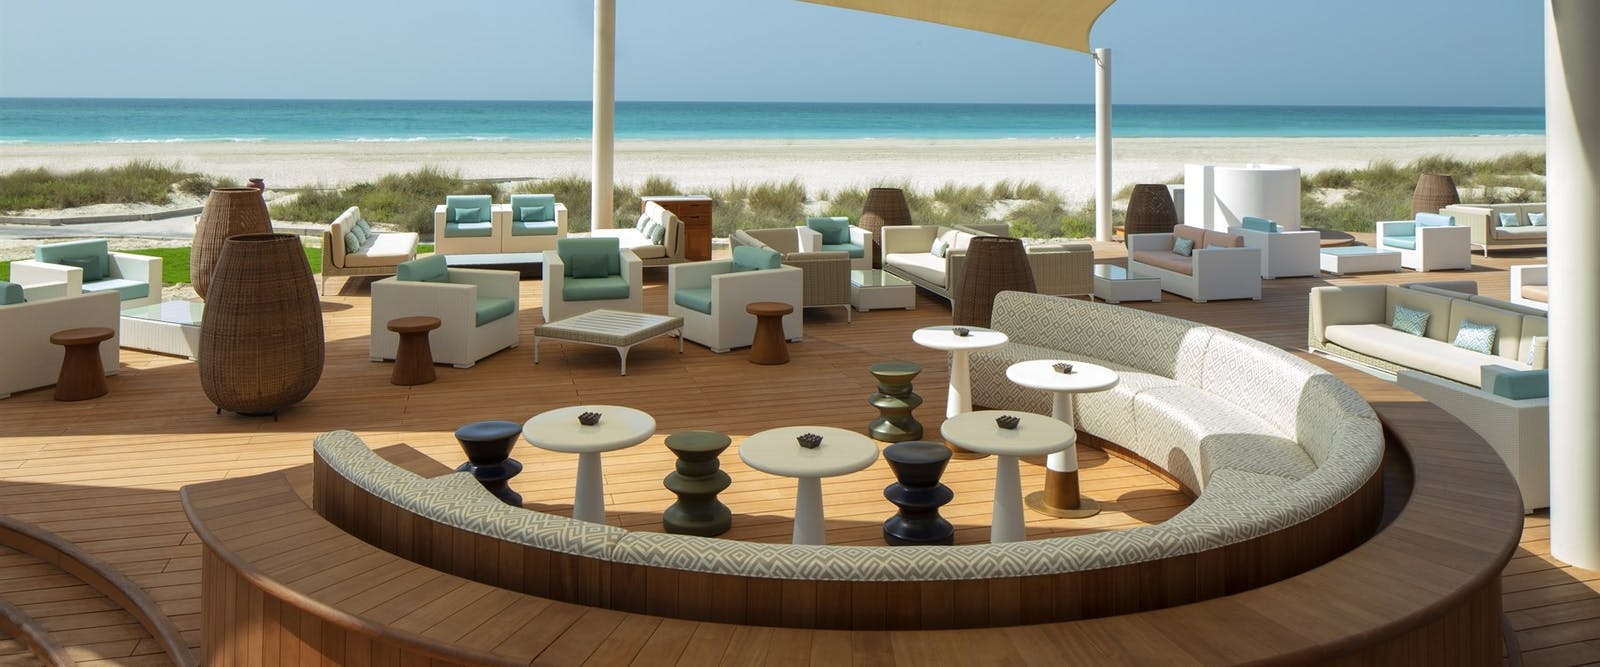 Lower Deck during the day at The St. Regis Saadiyat Island Resort